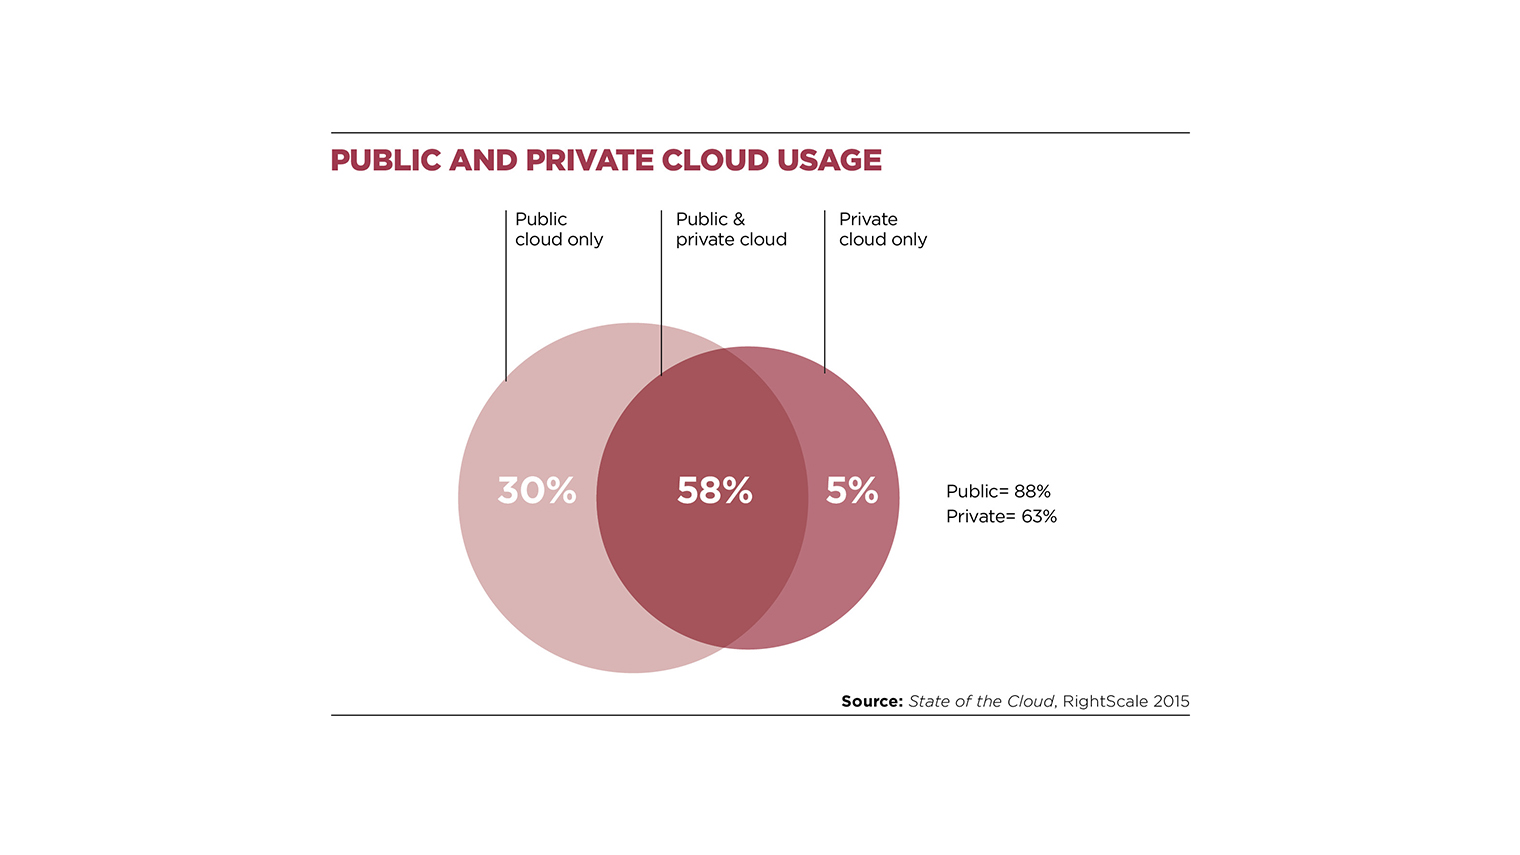 Public and private cloud usage